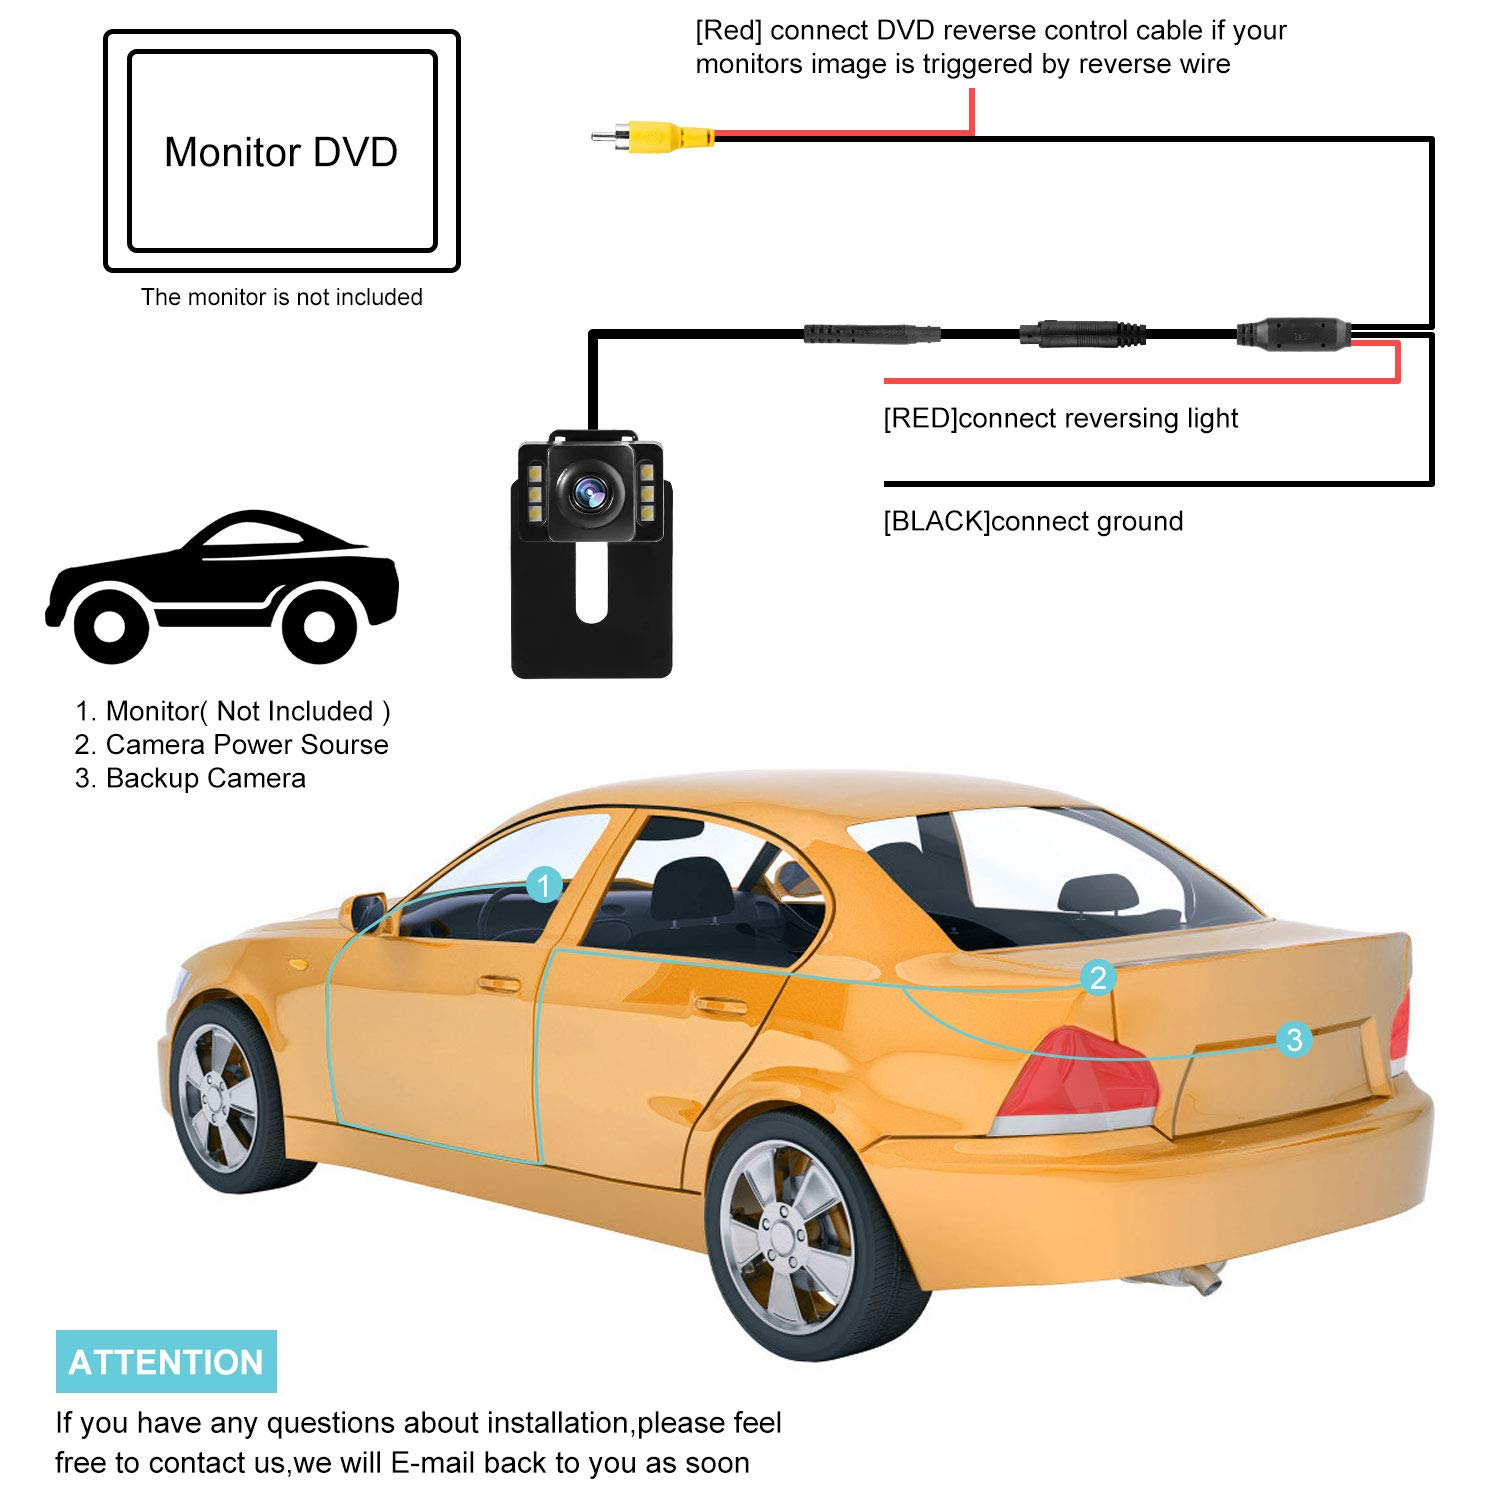 Car Backup Camera, 170°Wide Angle - IP69K Waterproof - Super Night Vision - HD Picture Quality and One Wire Easy Installation Reverse Reversing Rear View Camera for Cars Jeeps Trucks by SVTCAM